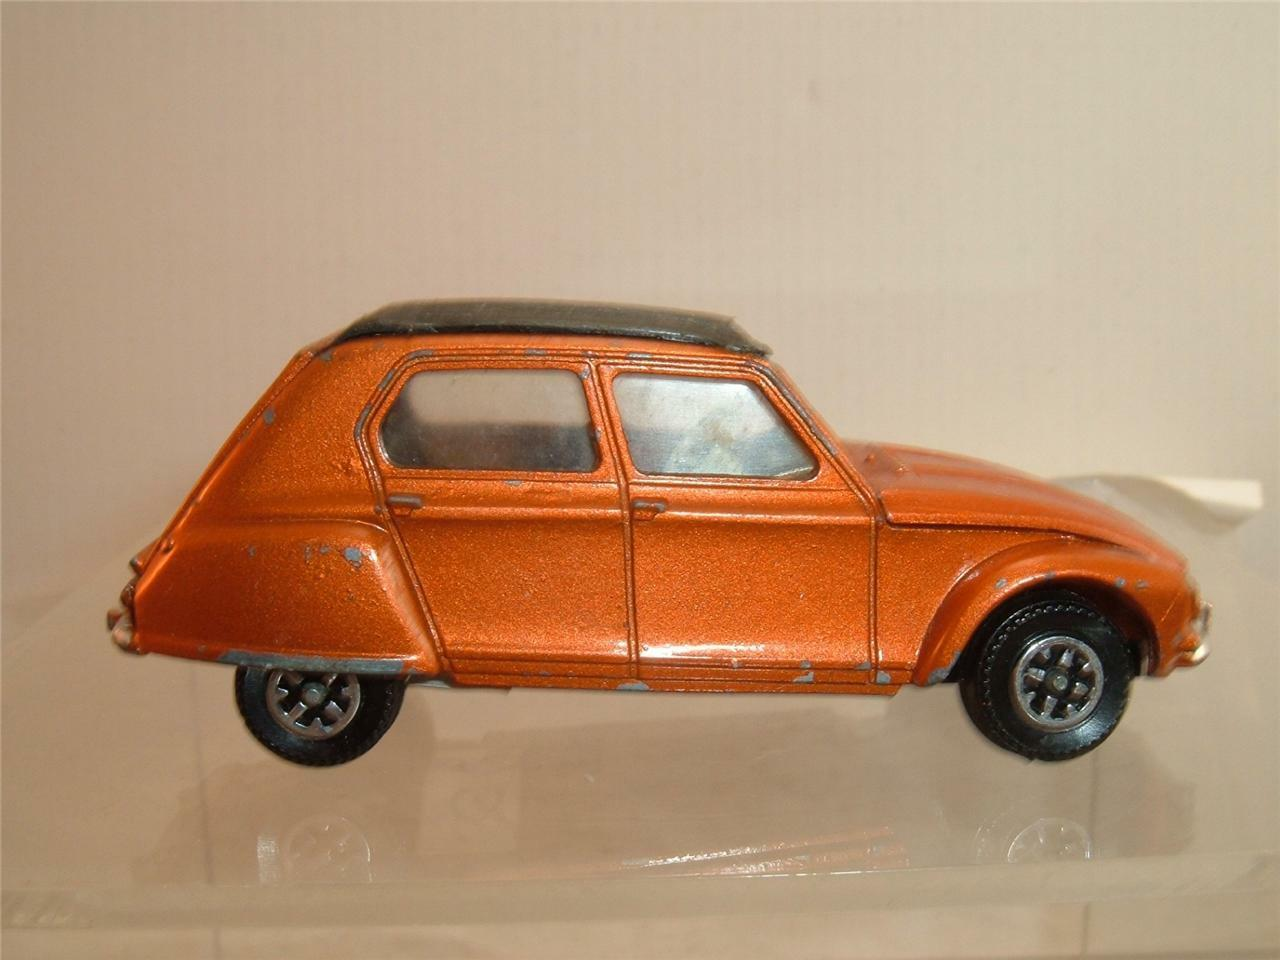 DINKY TOYS CITRONE DYANE IN NICE NICE NICE CLEAN ORIGINAL USED CONDITION SEE THE PHOTOS a9496b